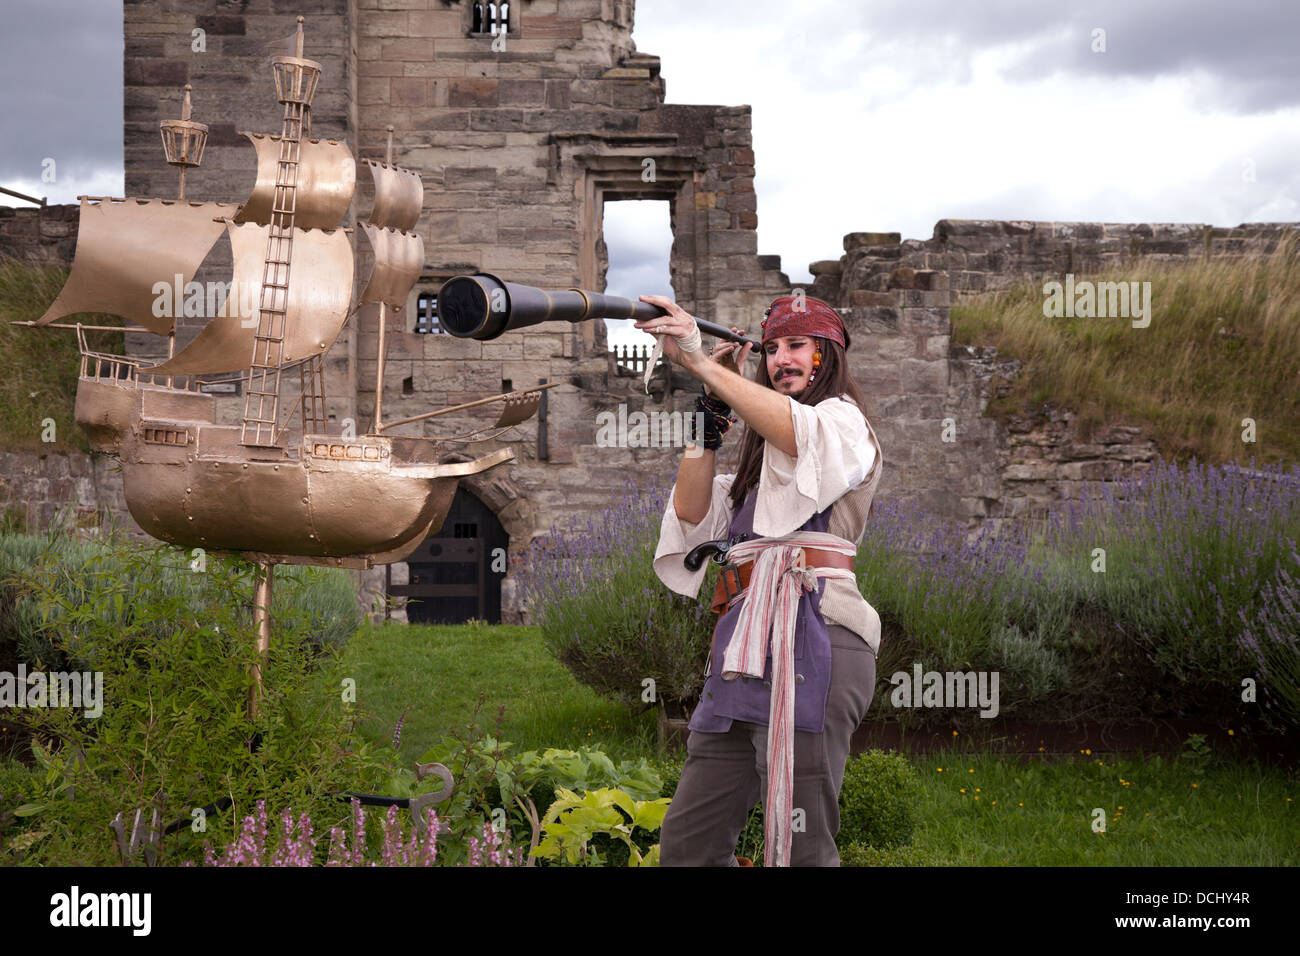 Pirate with telescope and Galleon garden ornament at Tutbury castle, Staffordshire, UK - Stock Image